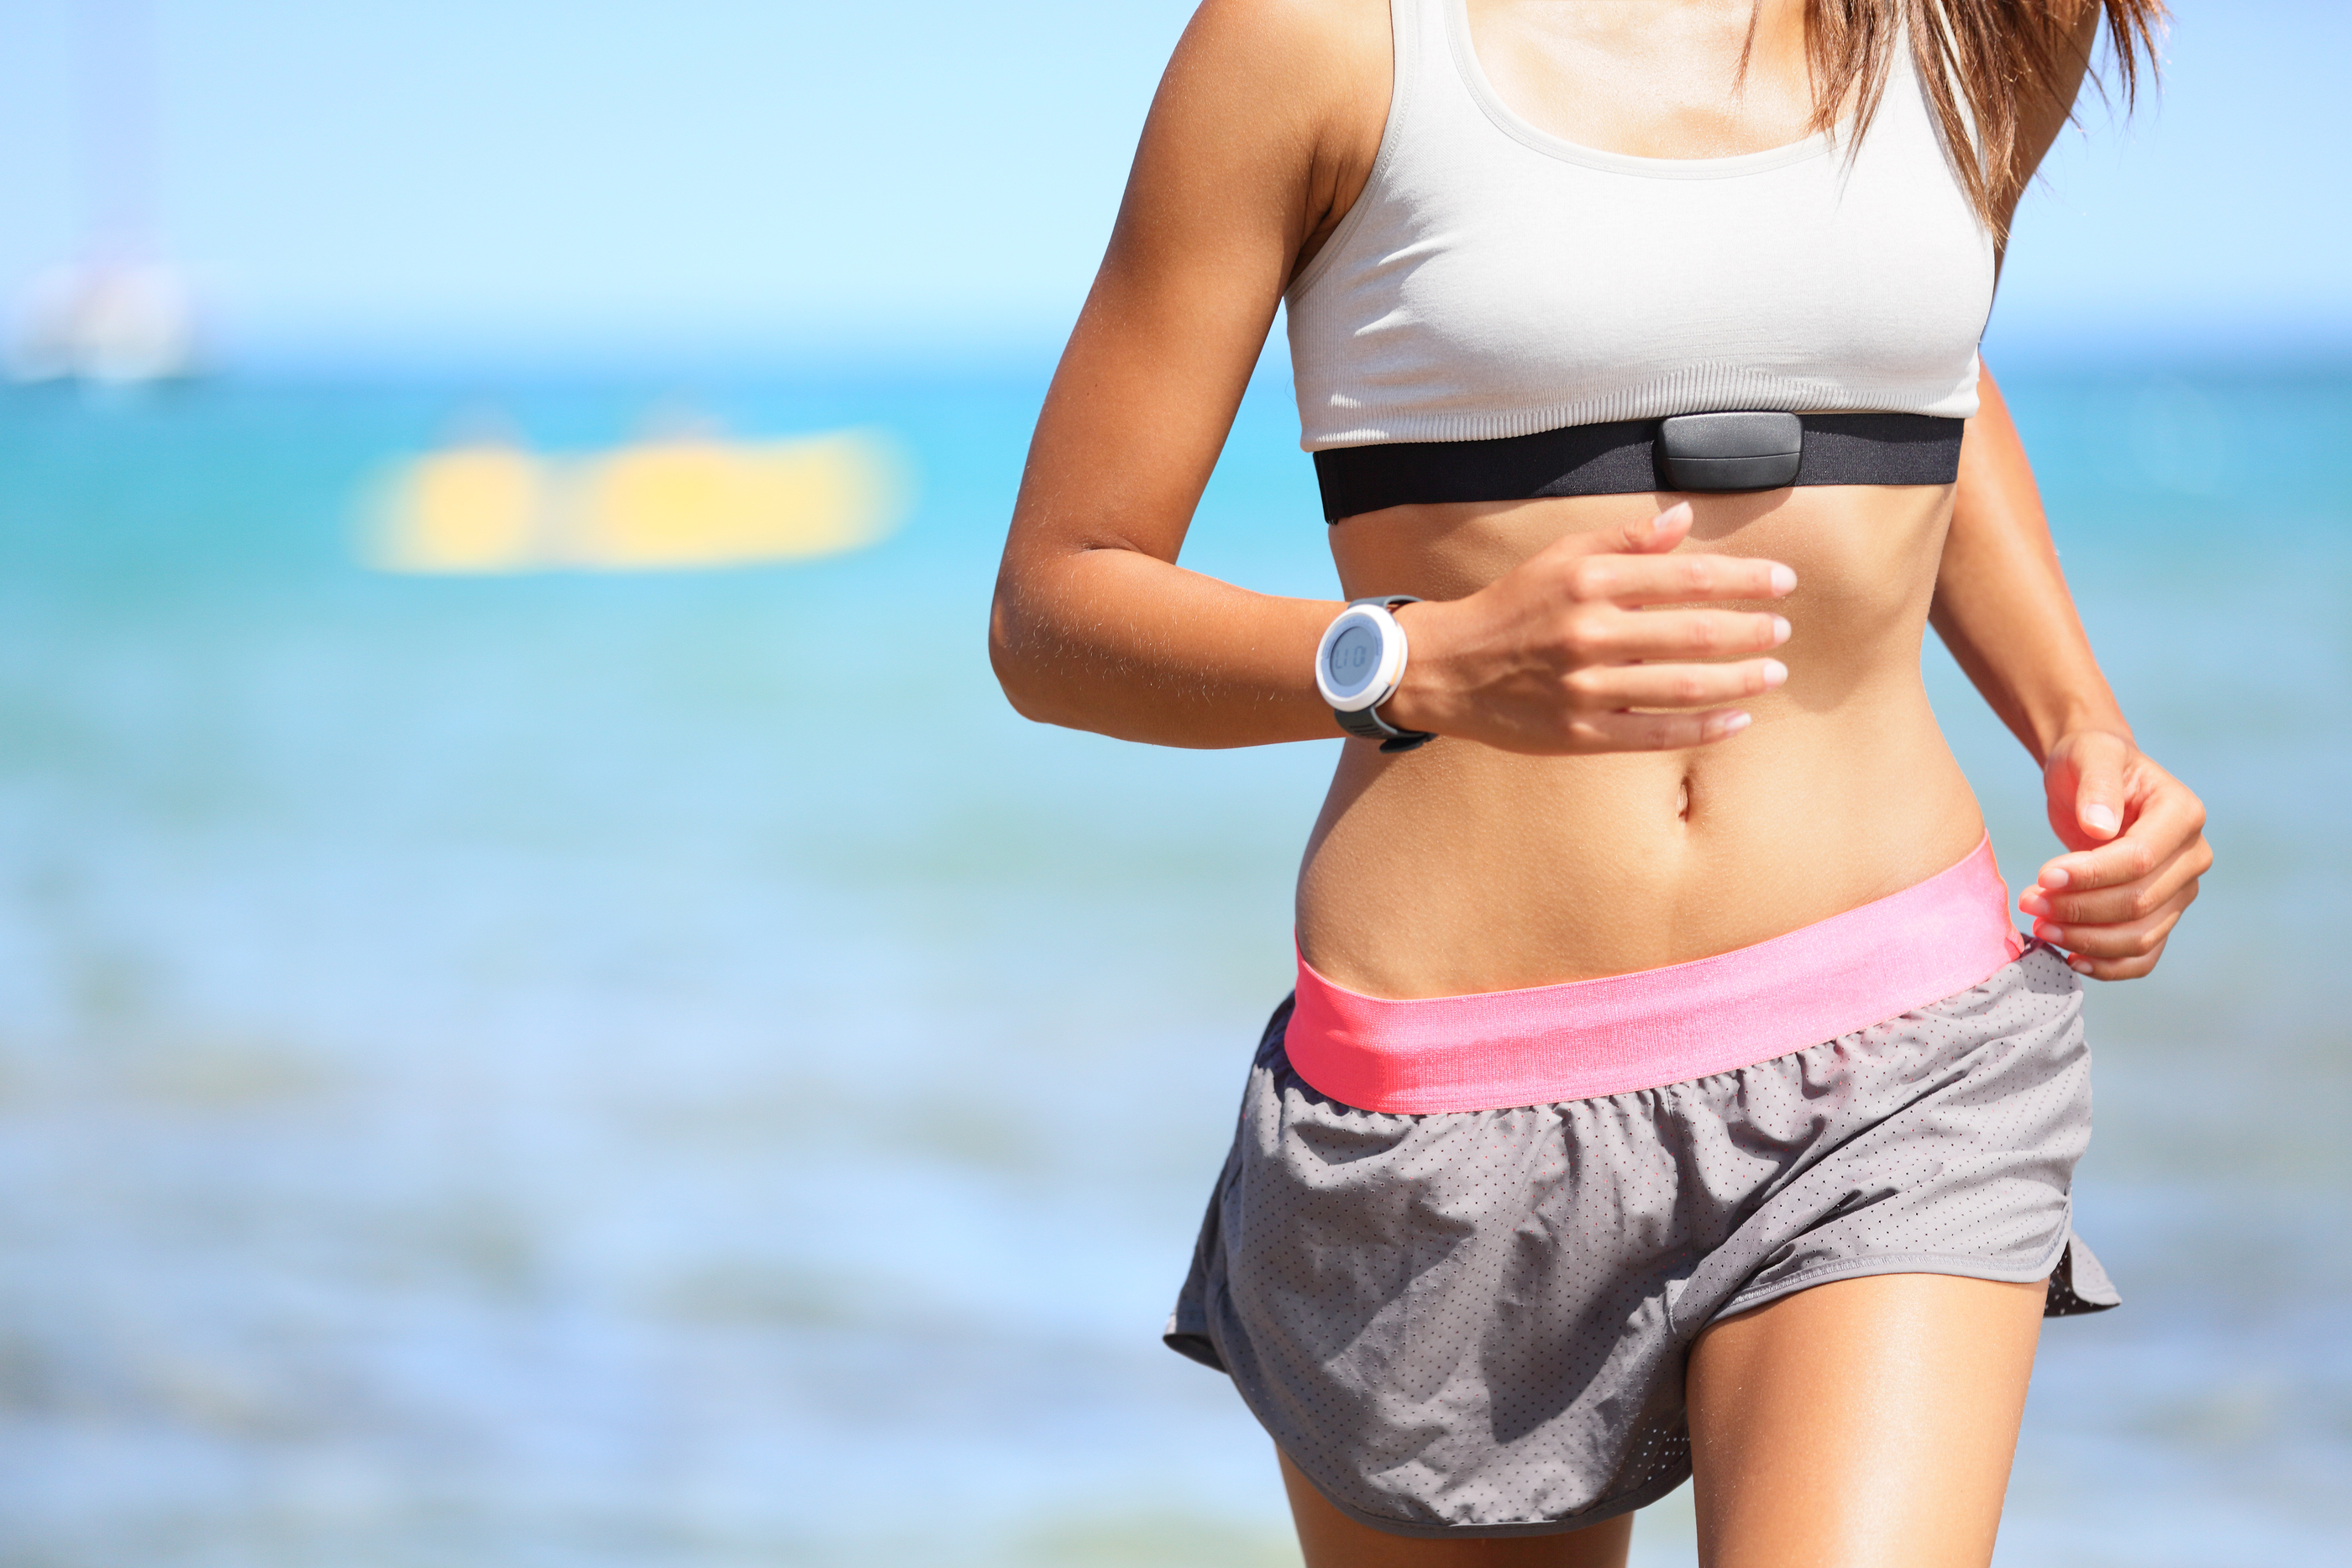 bigstock-Runner-woman-with-heart-rate-m-468598122